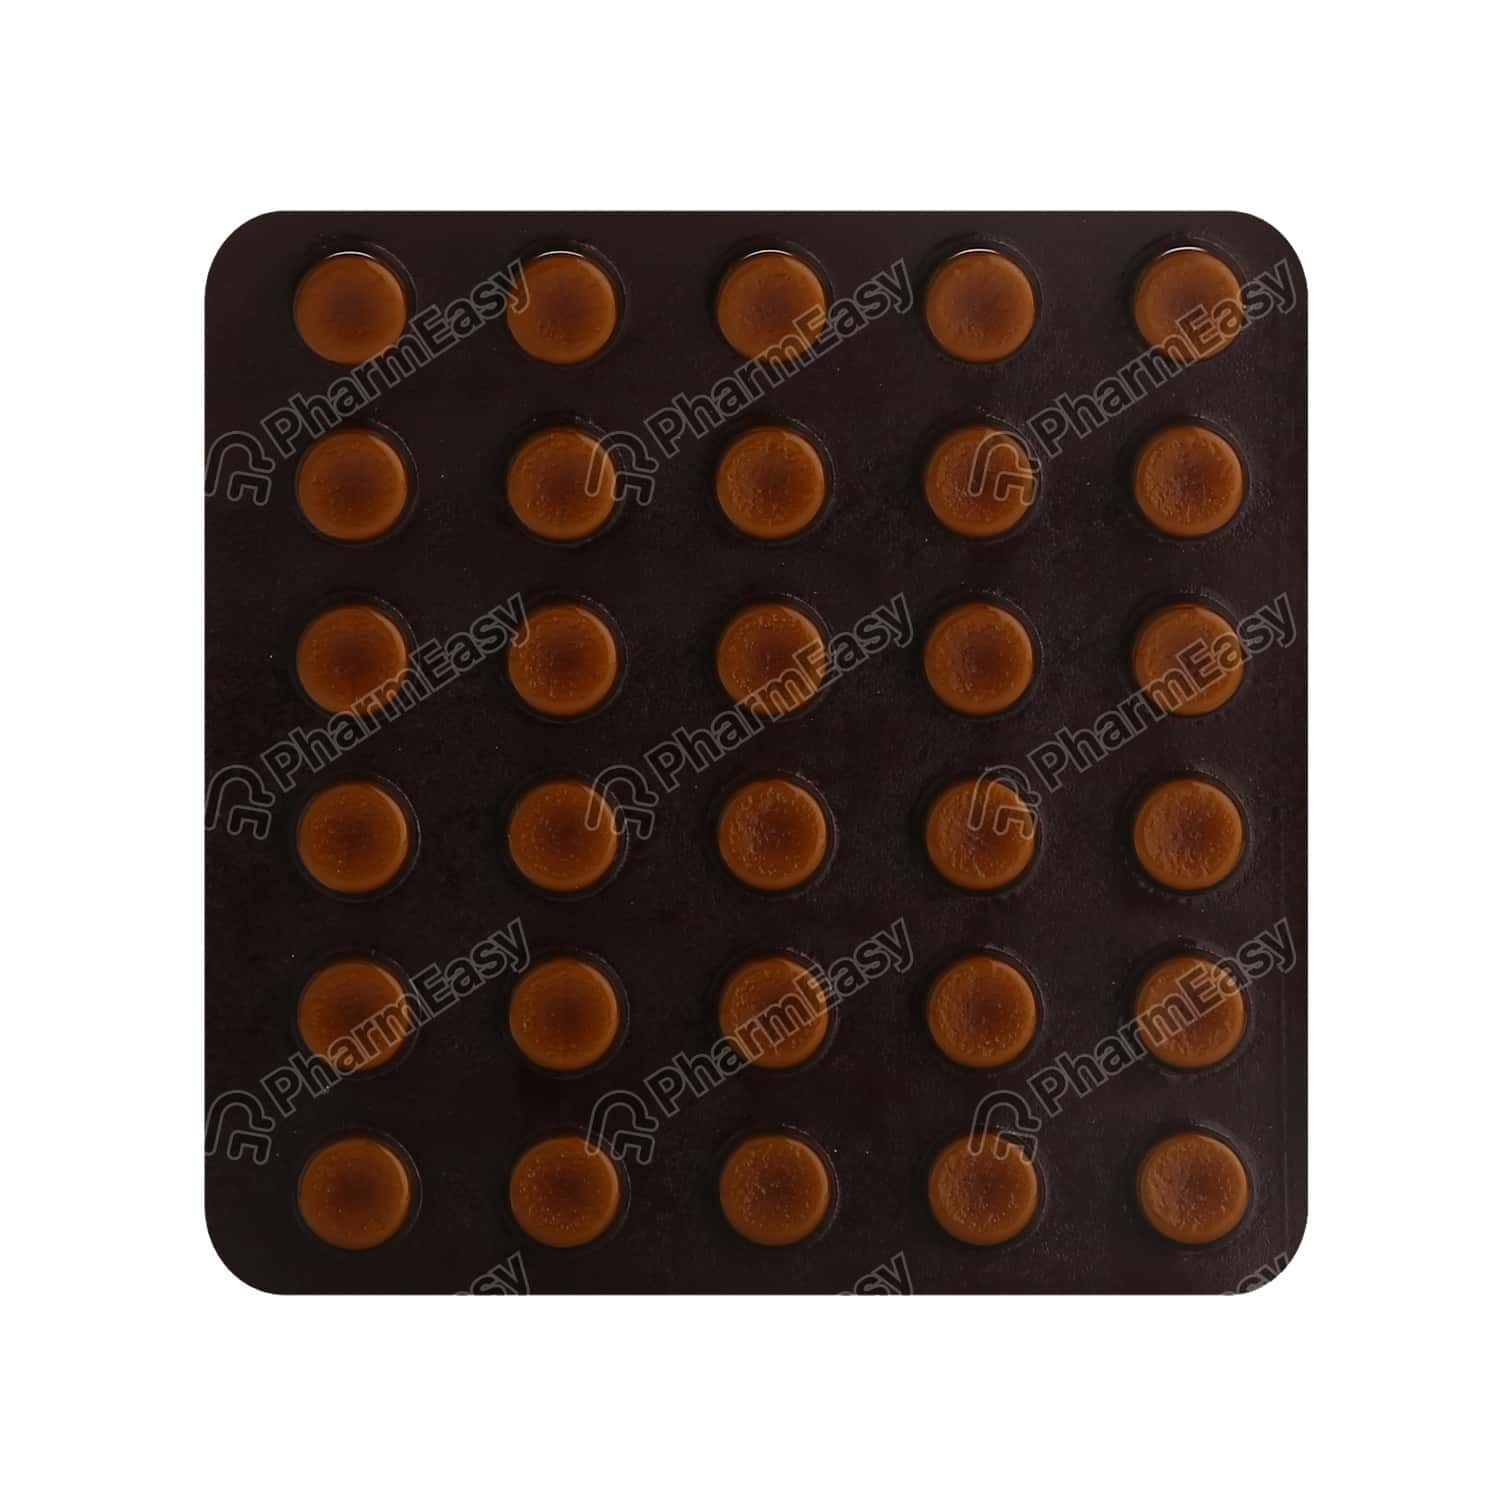 Piosys 30mg Tablet